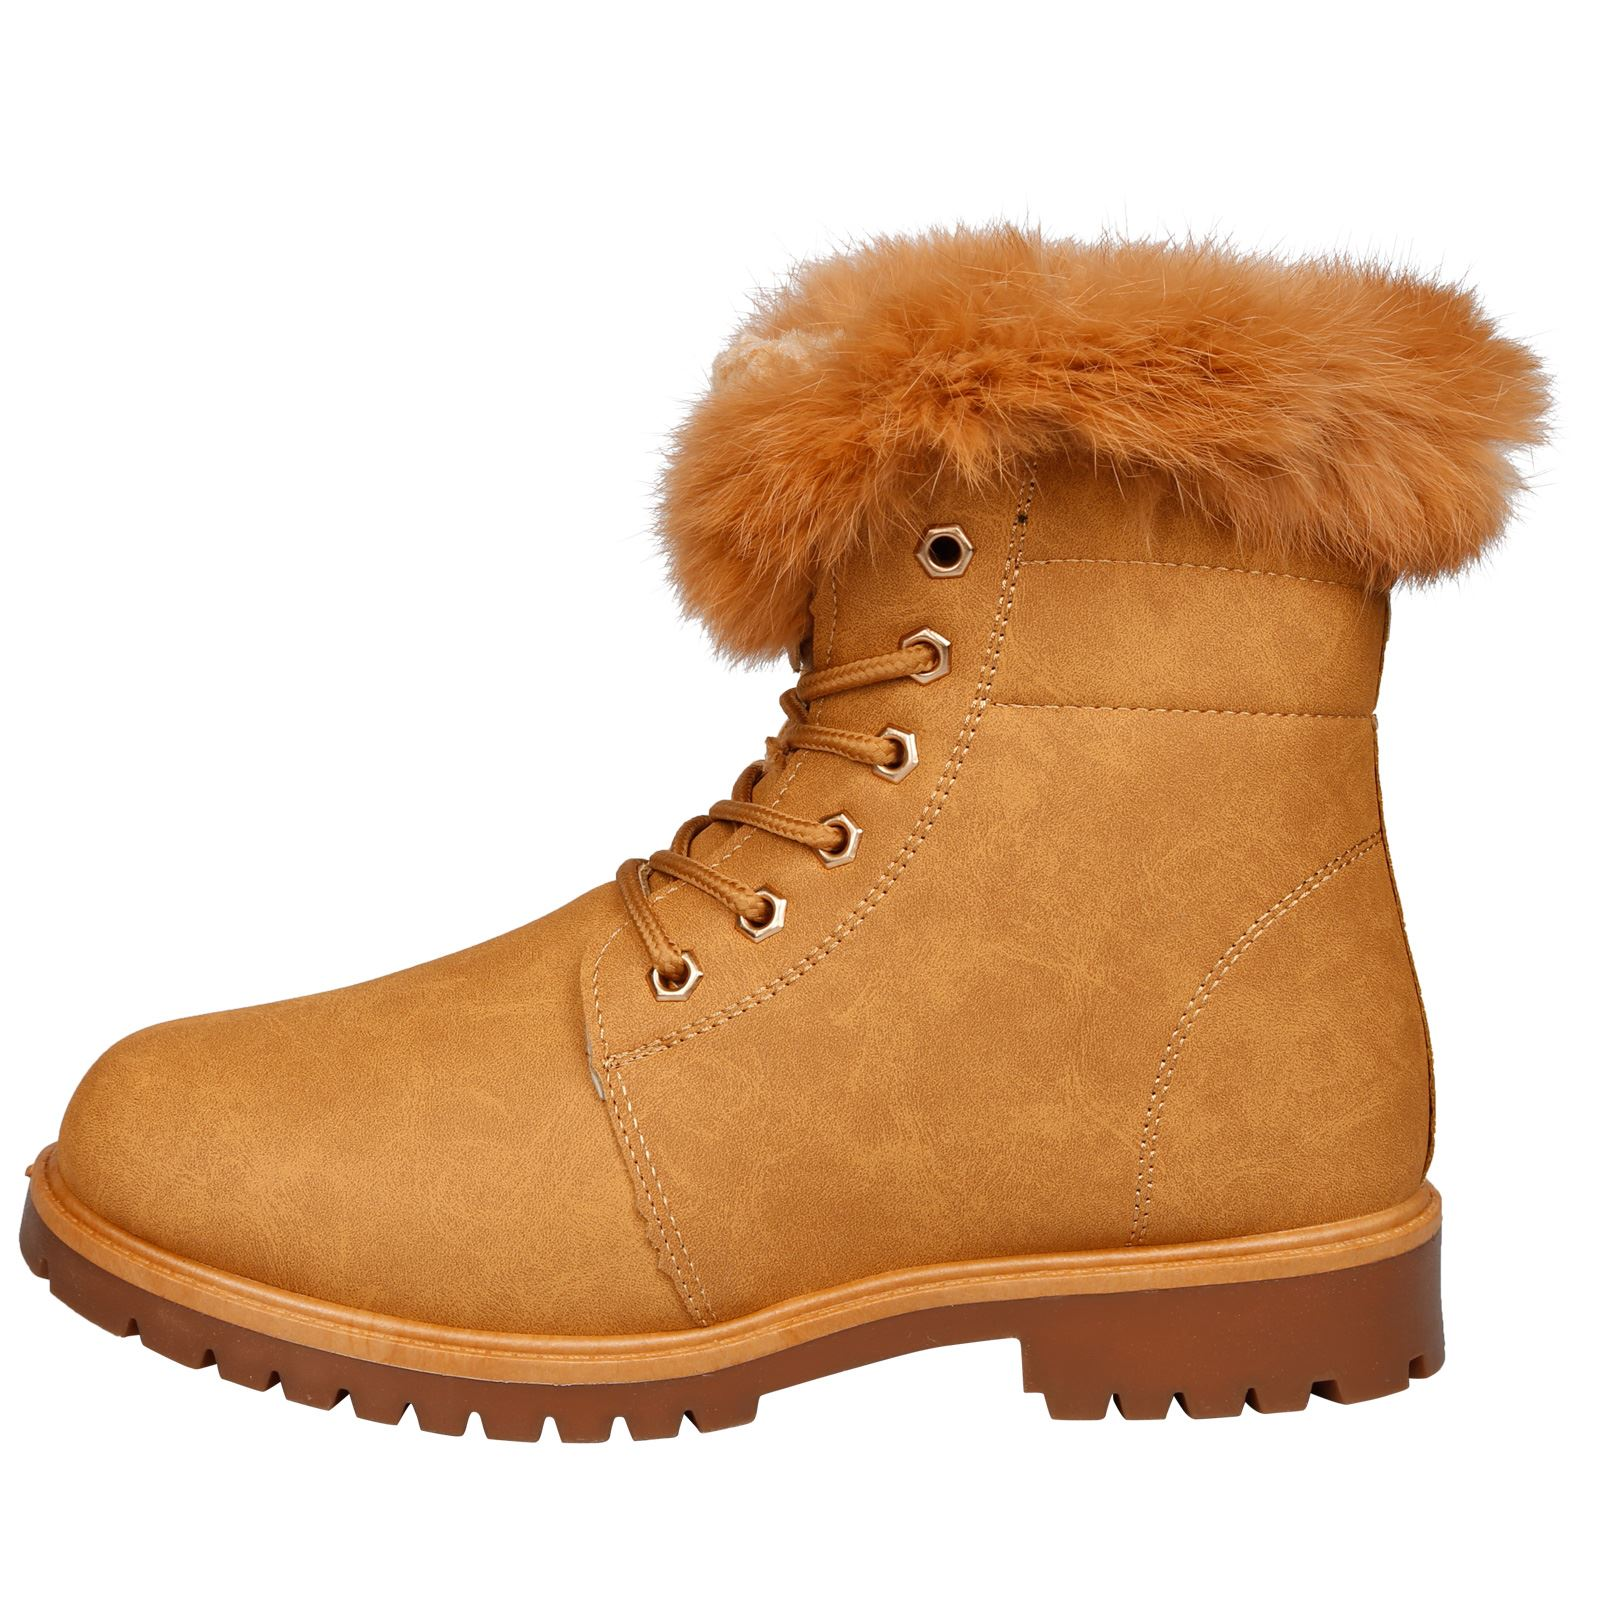 NEW-WOMEN-SHOES-LADIES-FUR-LINED-LOW-HEEL-LACE-UP-ANKLE-BOOTS-CASUAL-STYLE-SIZE thumbnail 12